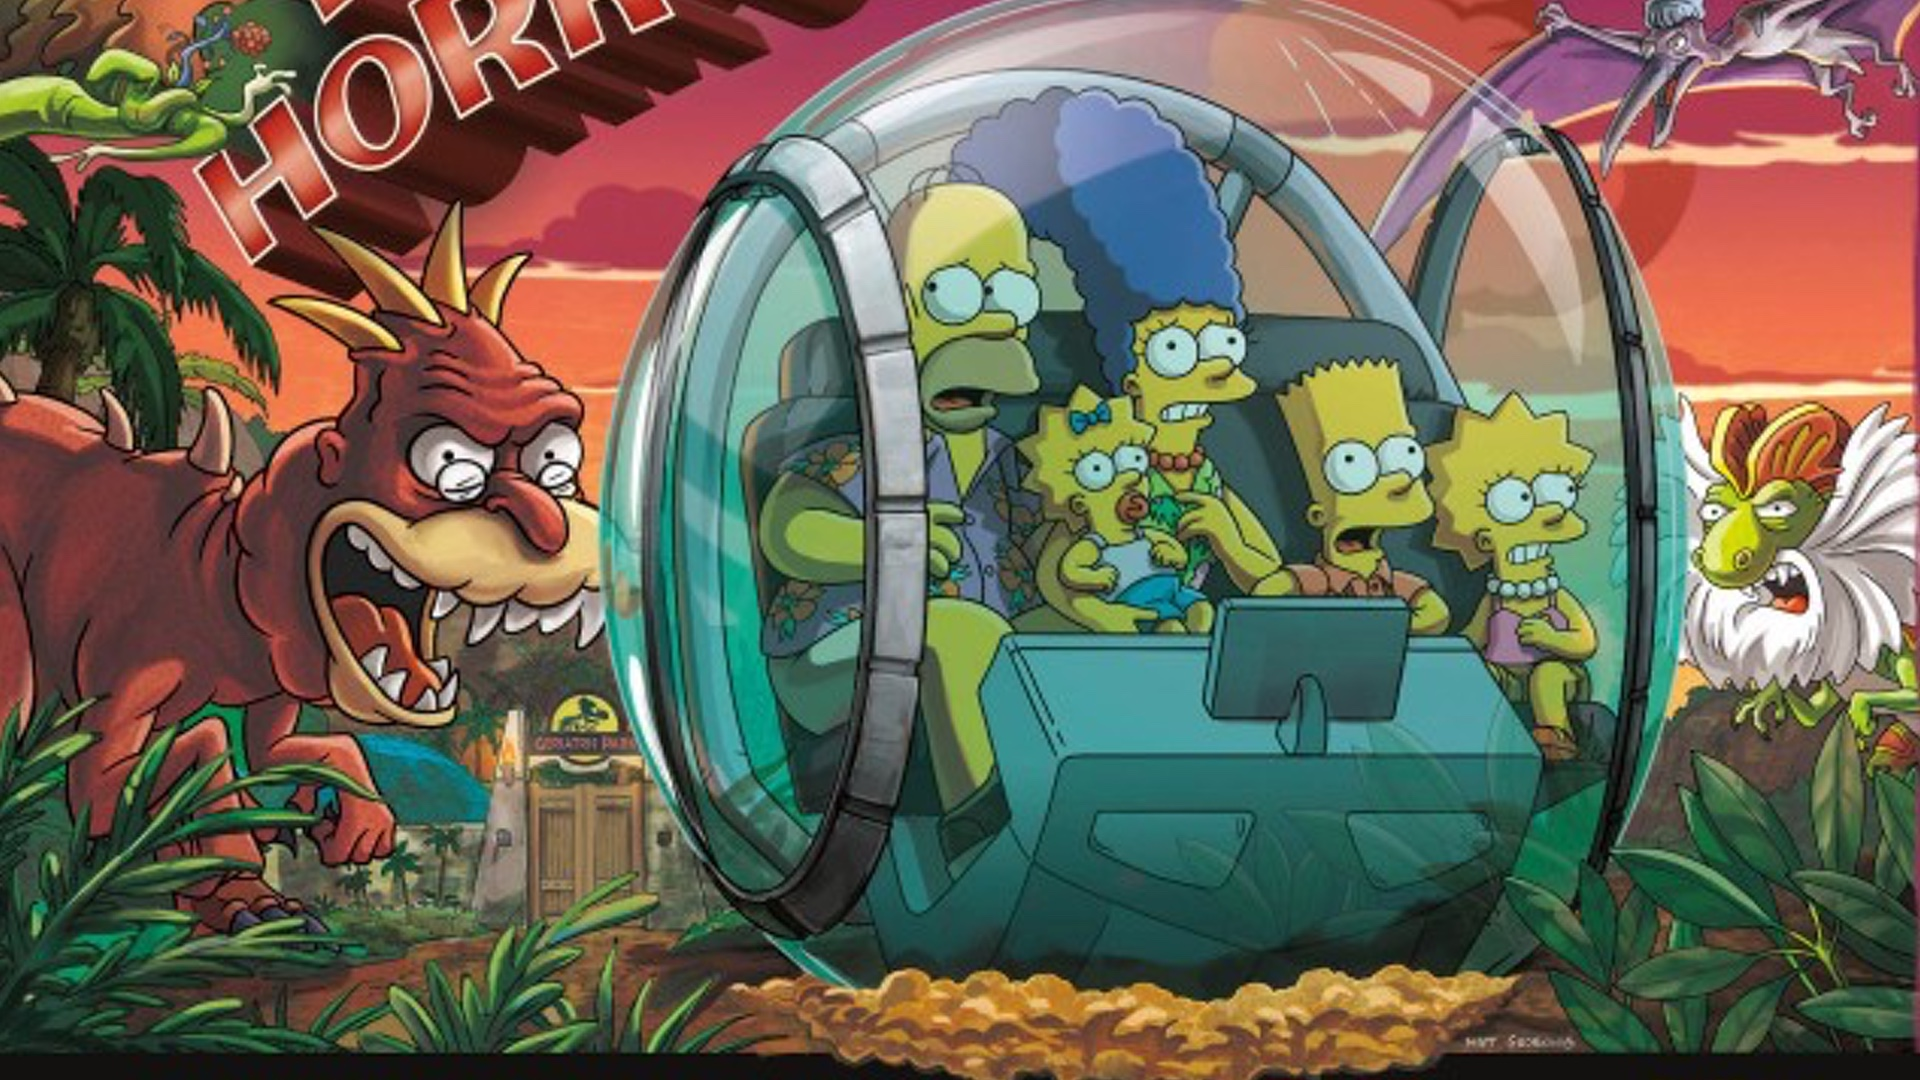 Halloween Simpsons Treehouse Of Horror.The Spores Attack In Clip From The Simpsons Upcoming Treehouse Of